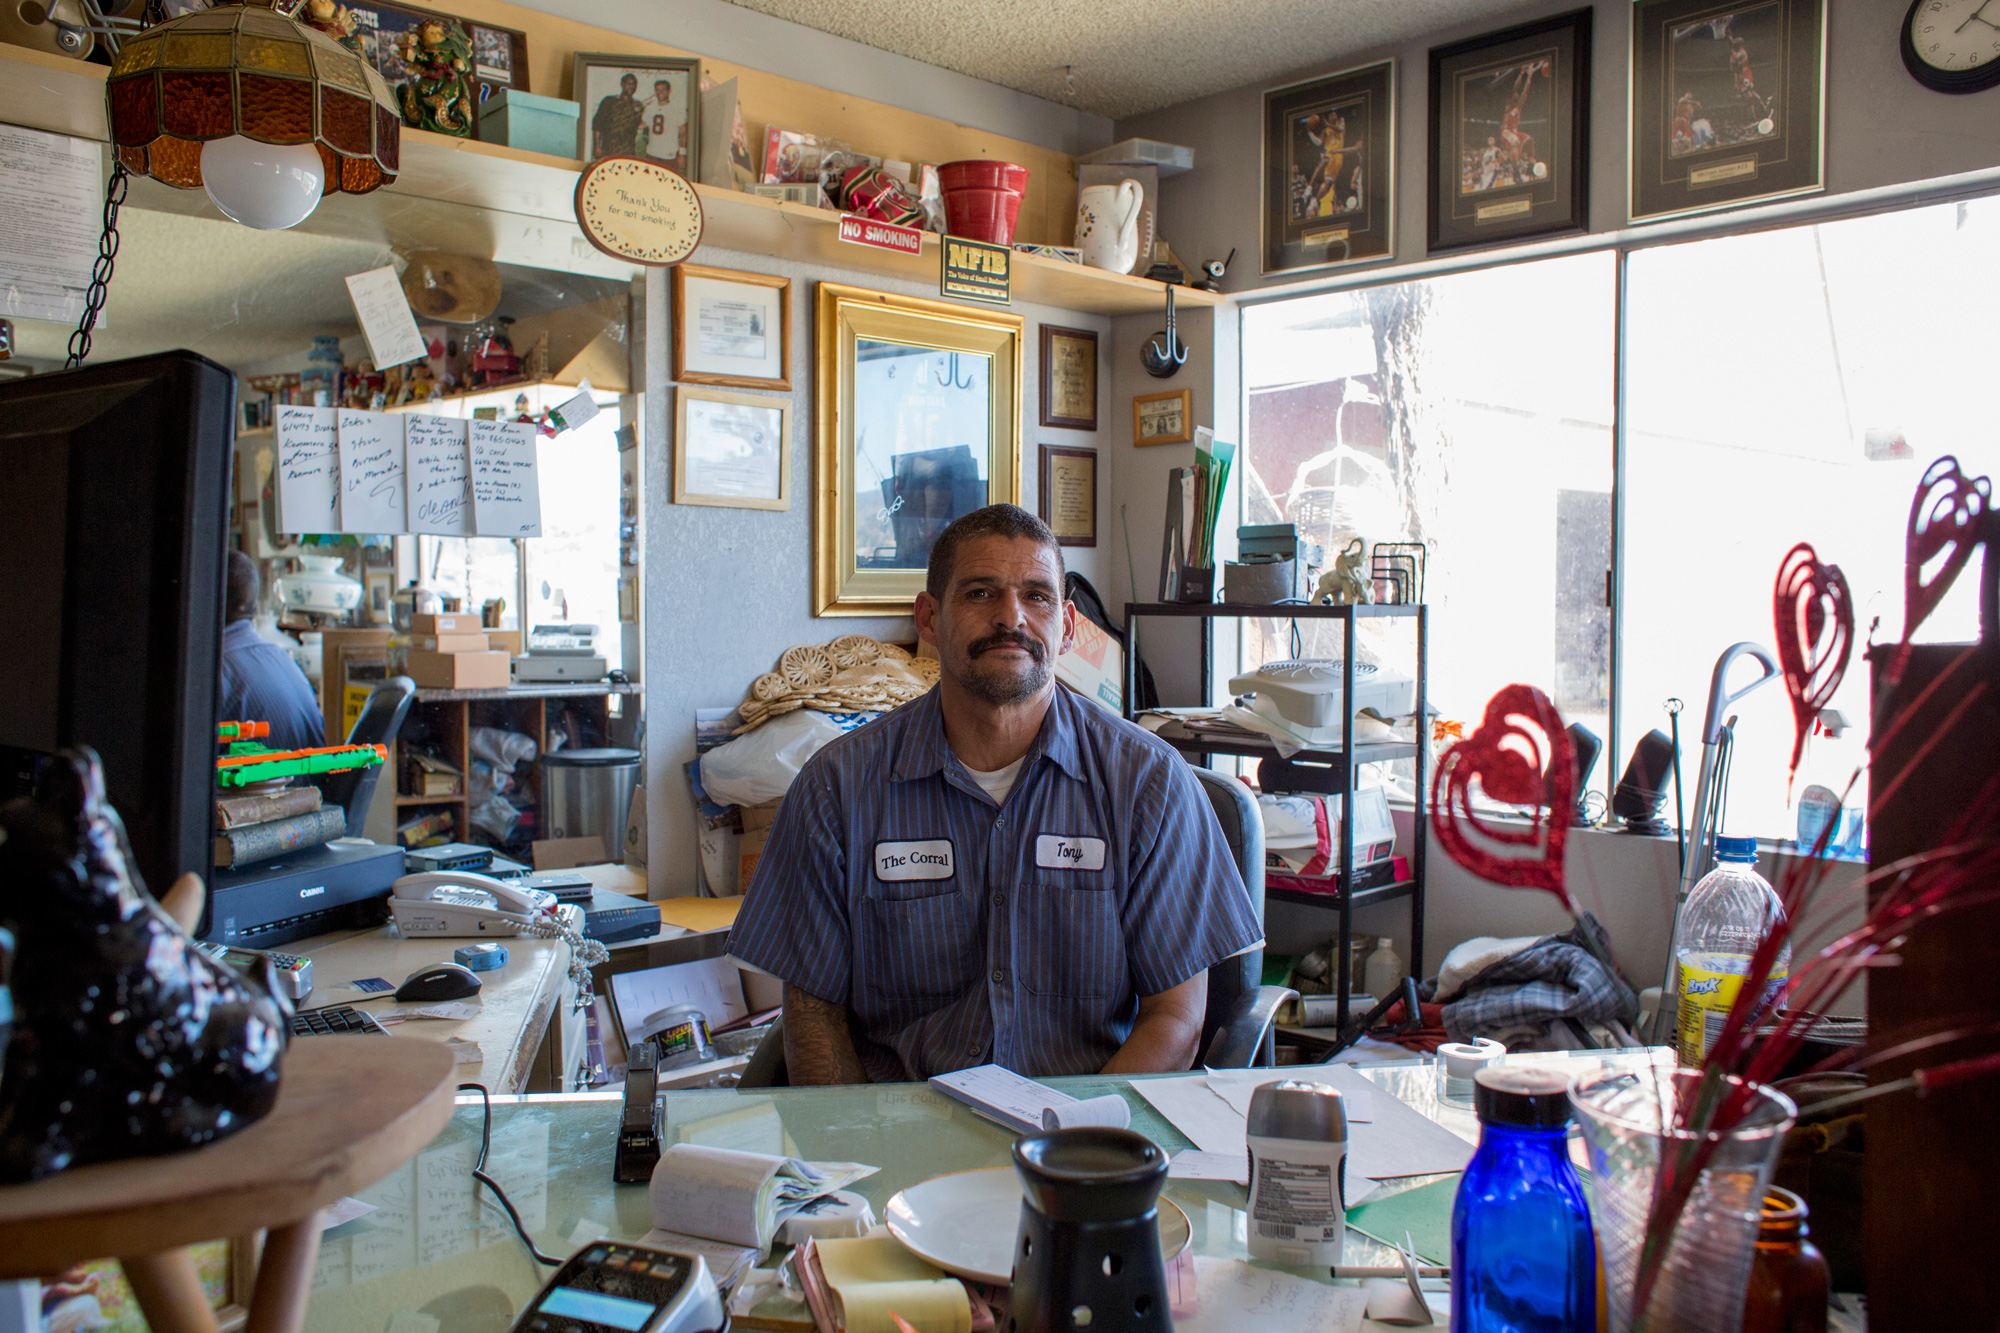 Tony in his office at The Corral